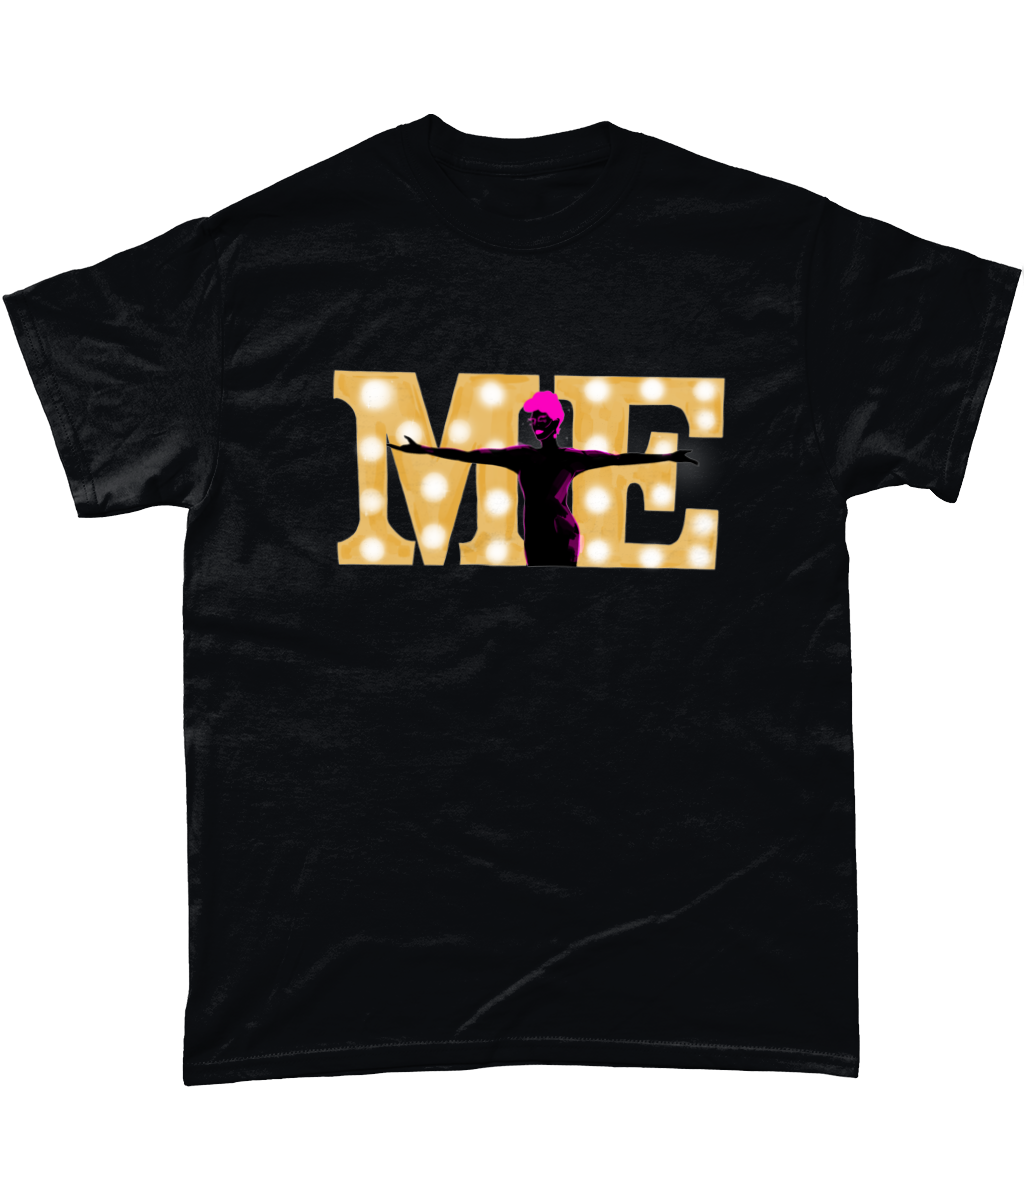 ME - Official Merch - Black Tee